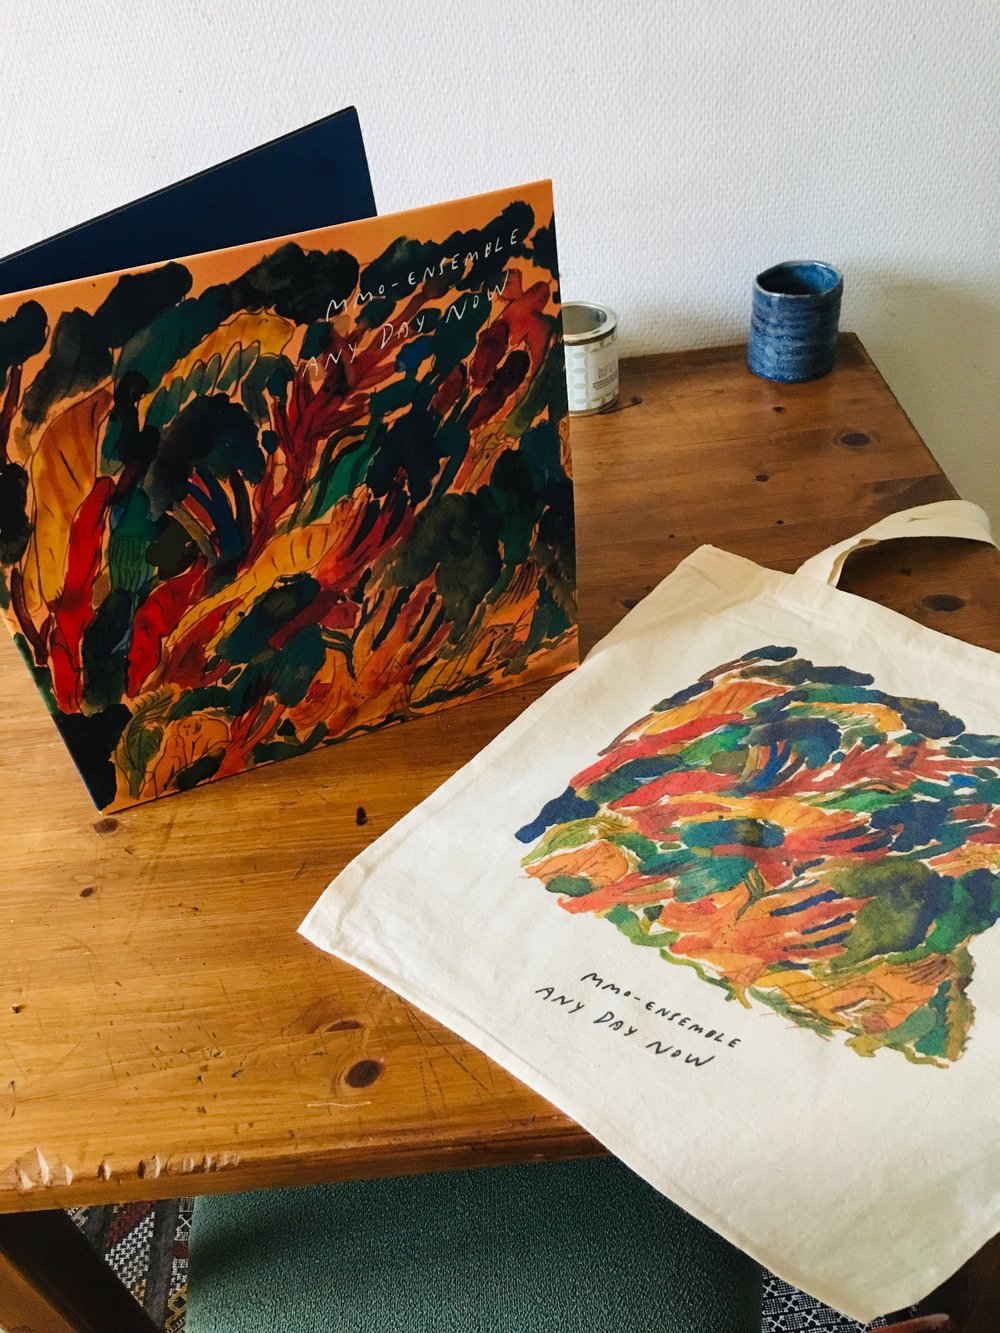 Vinyl and totebags of Any Day Now has finally arrived :) !!! - PM olsenmartinmyhre@gmail.com for orders while the shop is a work in progress….